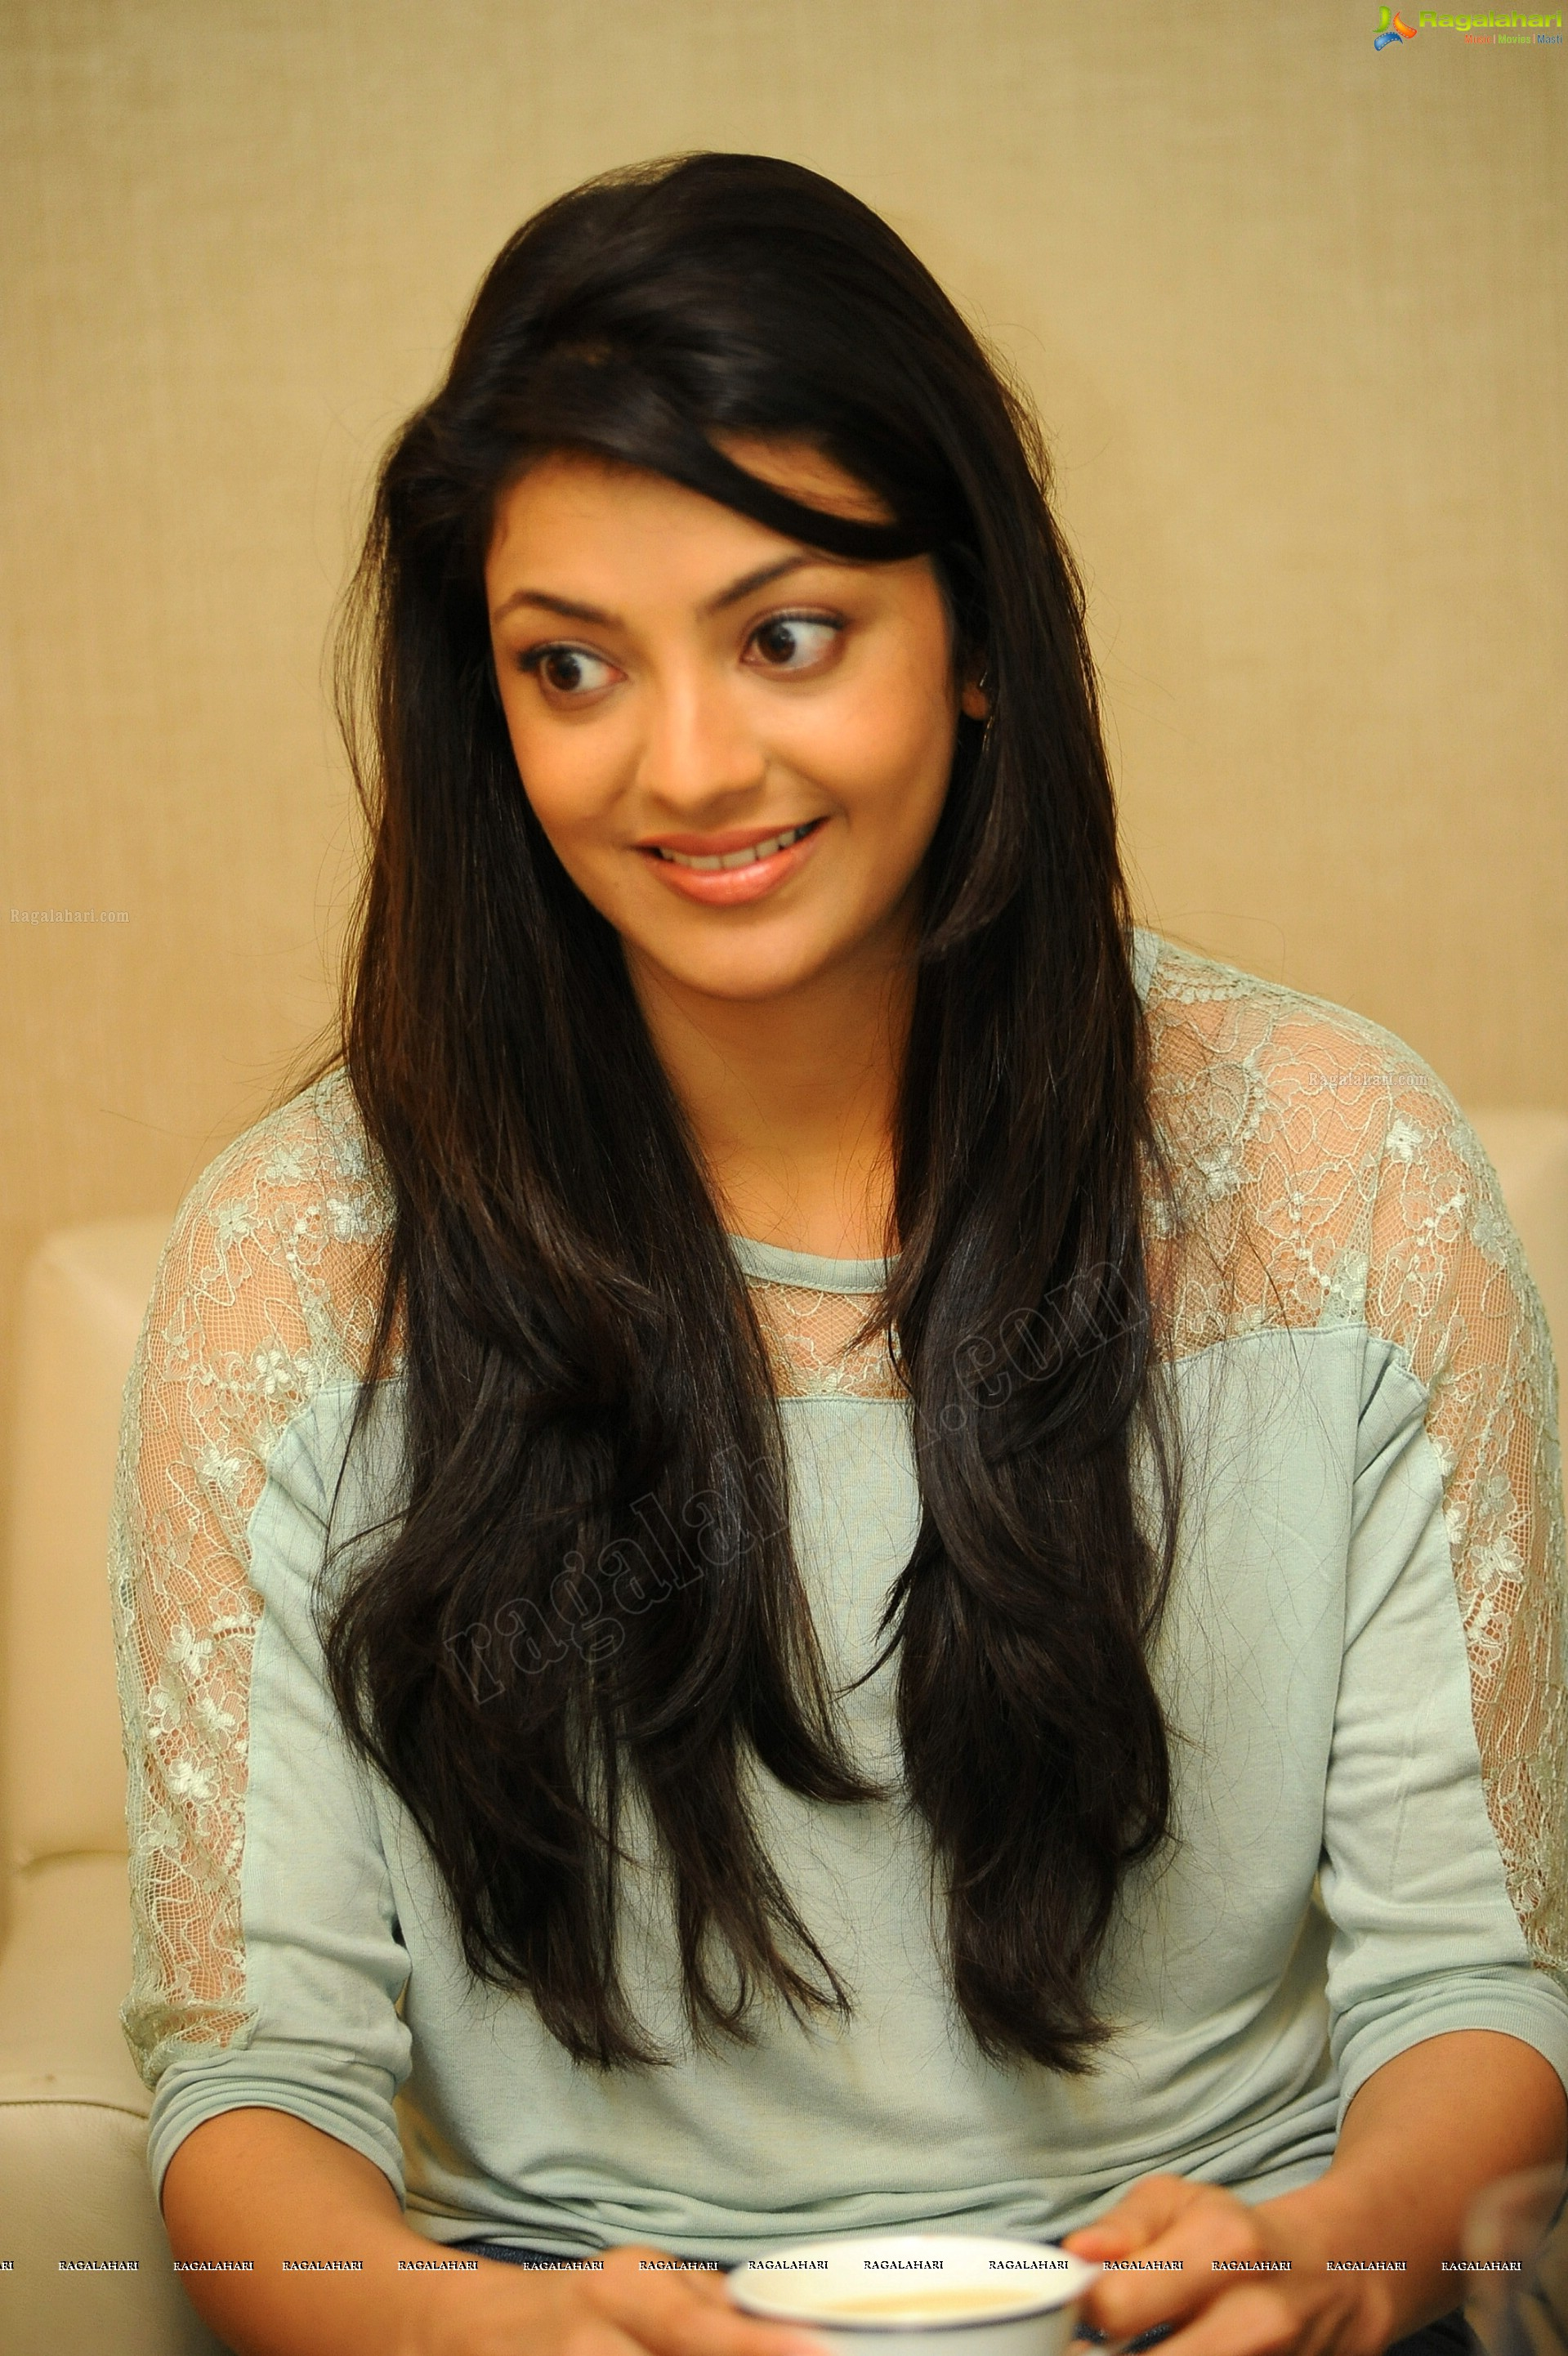 kajal agarwal (hd) image 48 | latest bollywood actor wallpapers